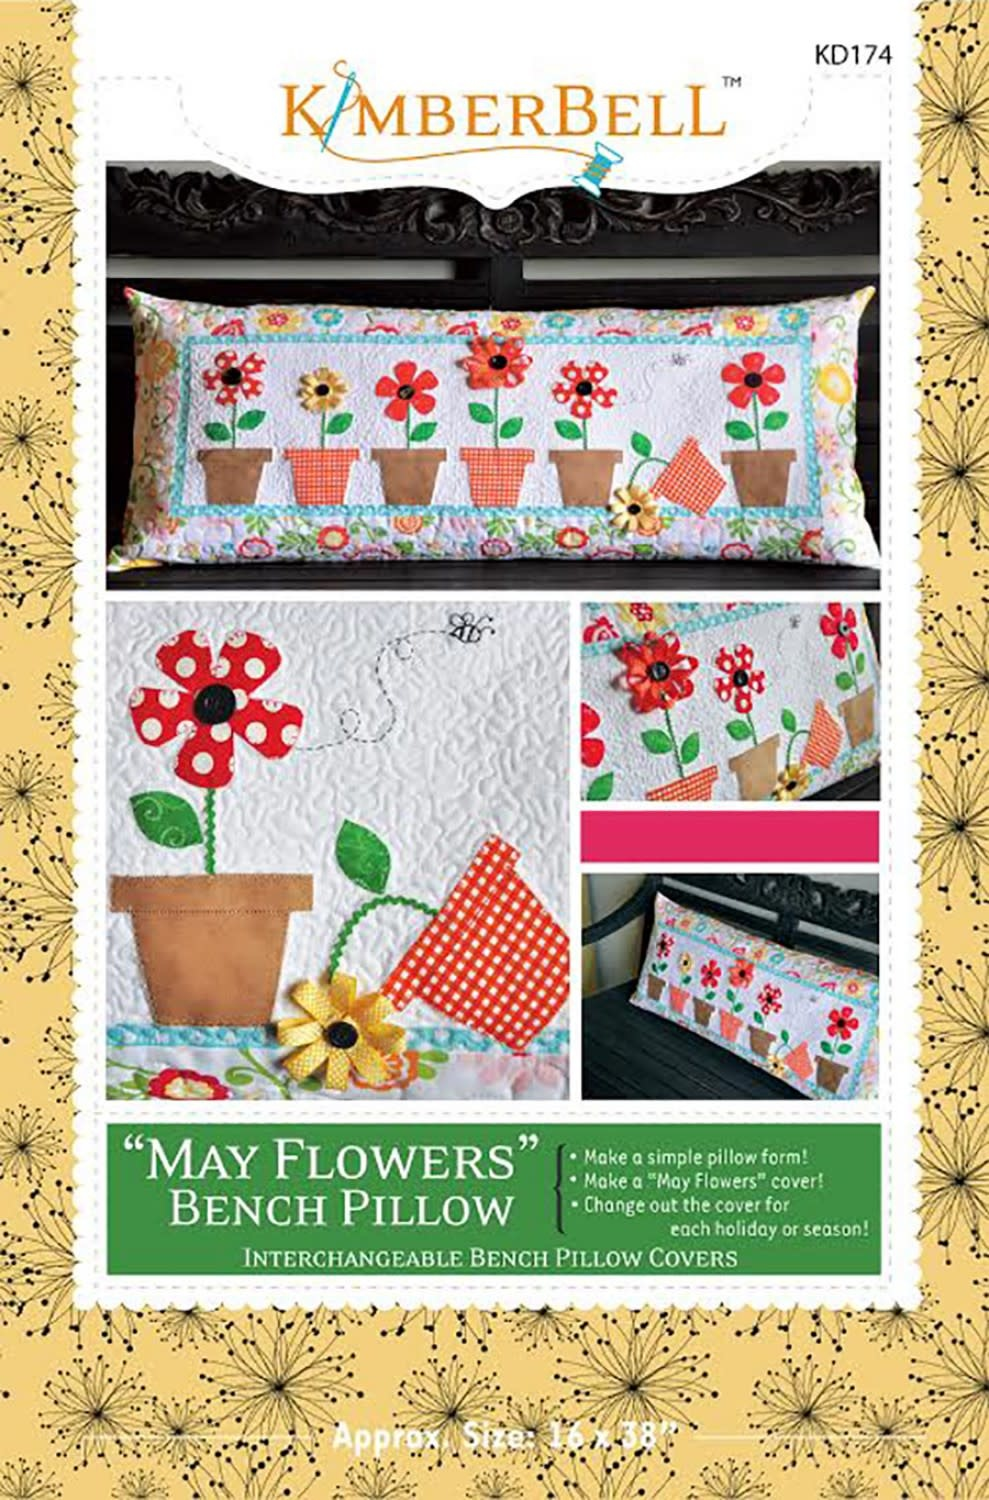 KIMBERBELL DESIGNS May Flowers Bench Pillow Pattern